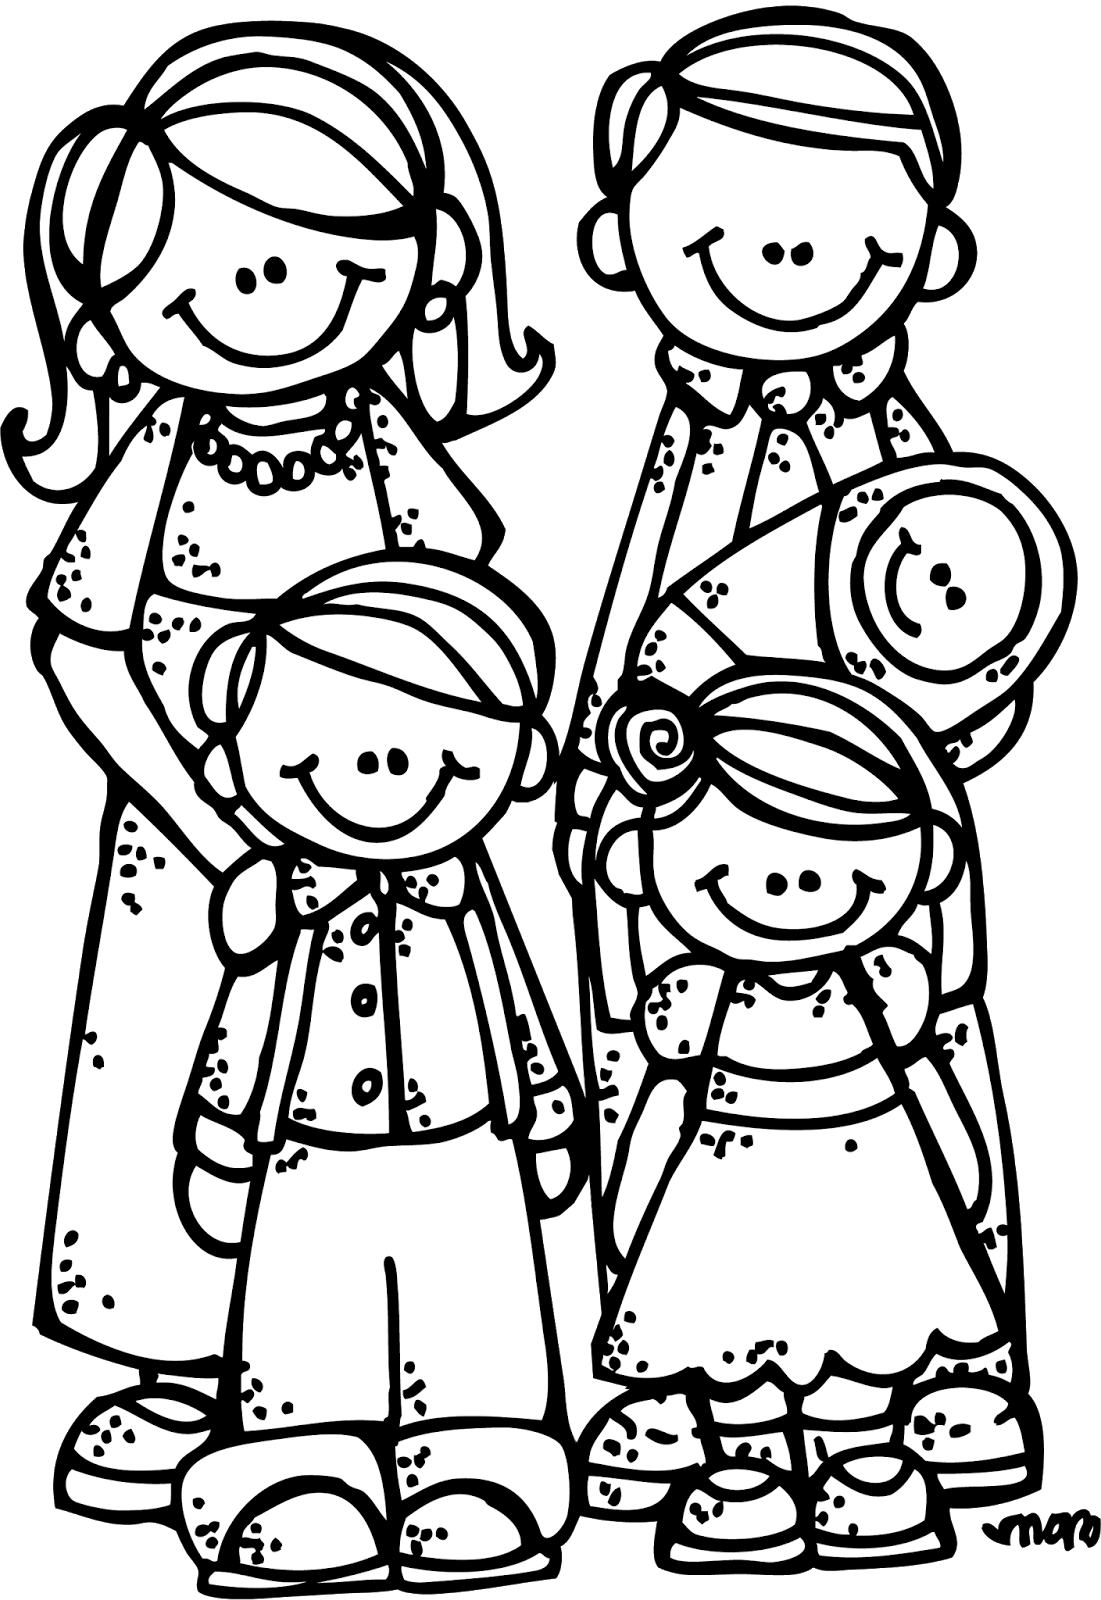 melonheadz lds illustrating new eternal family graphics churchy rh pinterest com au lds family clipart black and white lds clipart family history